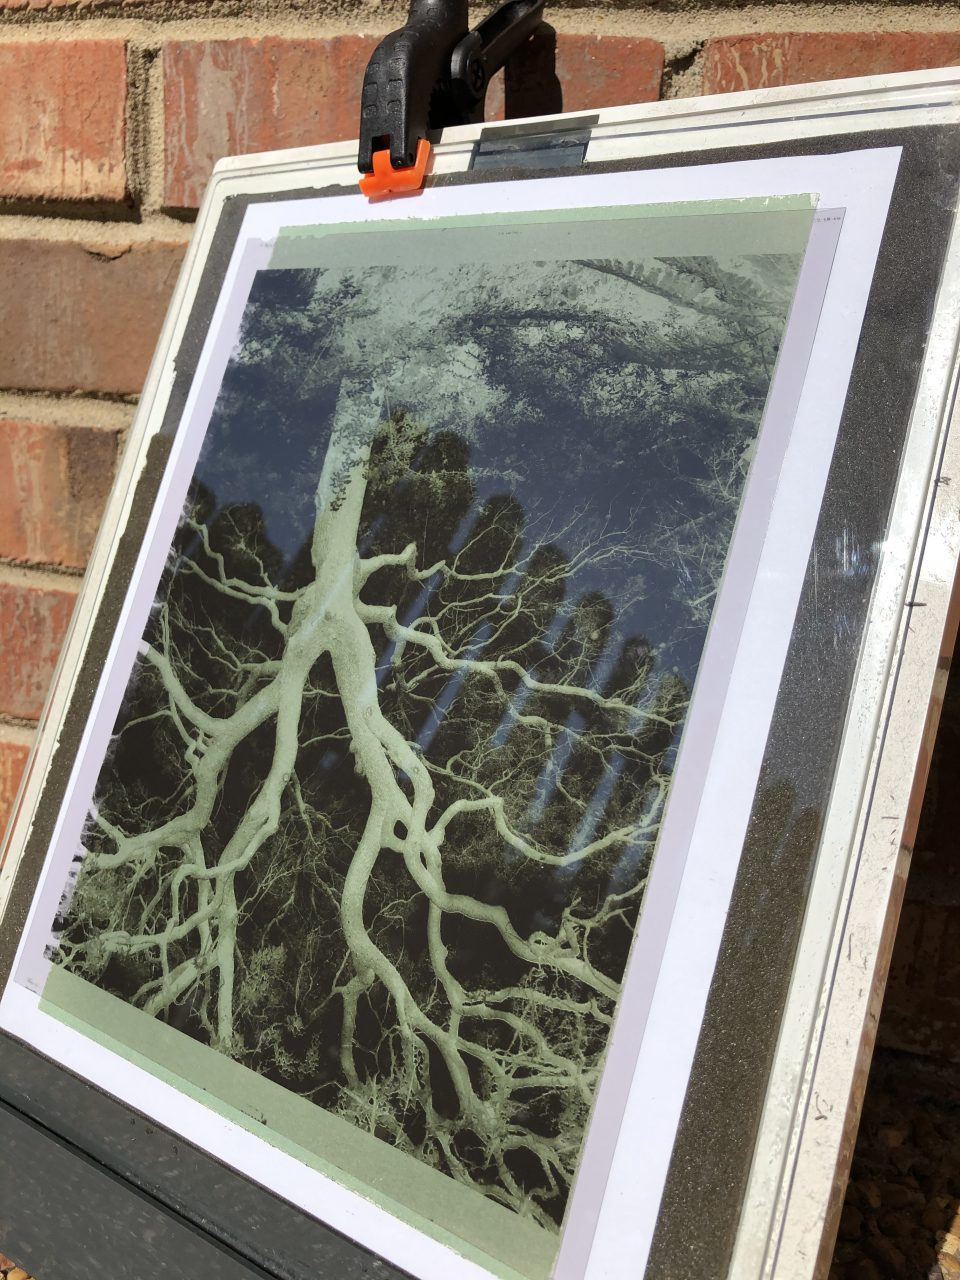 You can print leaves and plants or large negatives. Here I'm exposing an 8 x 10 film negative of my photograph of a great oak tree.